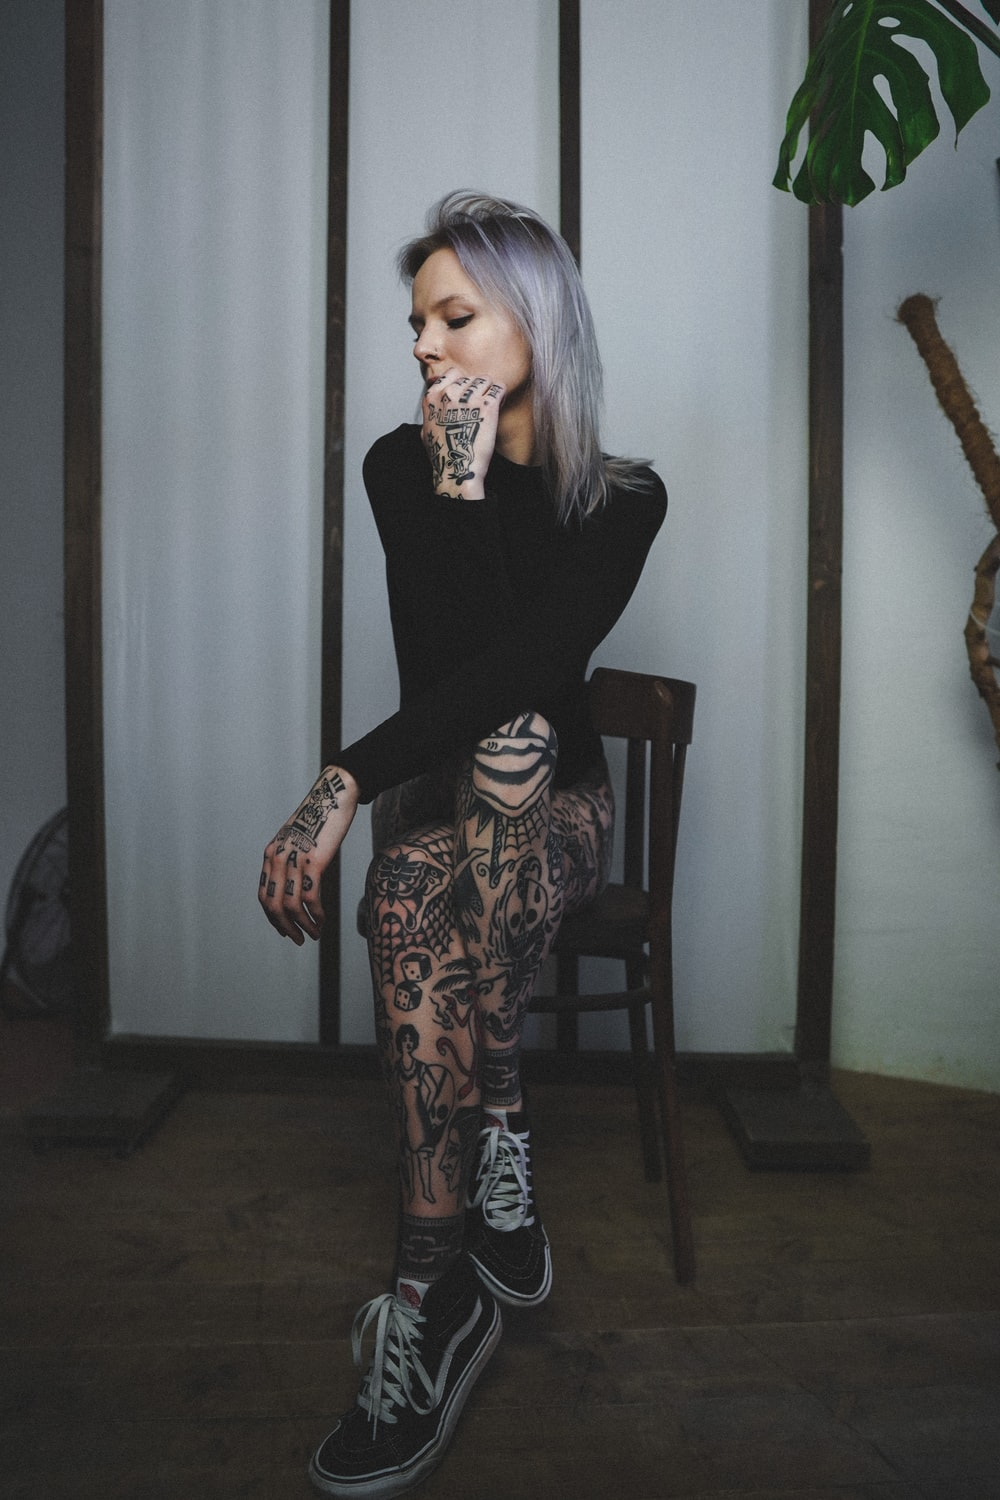 woman in black long sleeve shirt and black and white pants standing near brown wooden chair